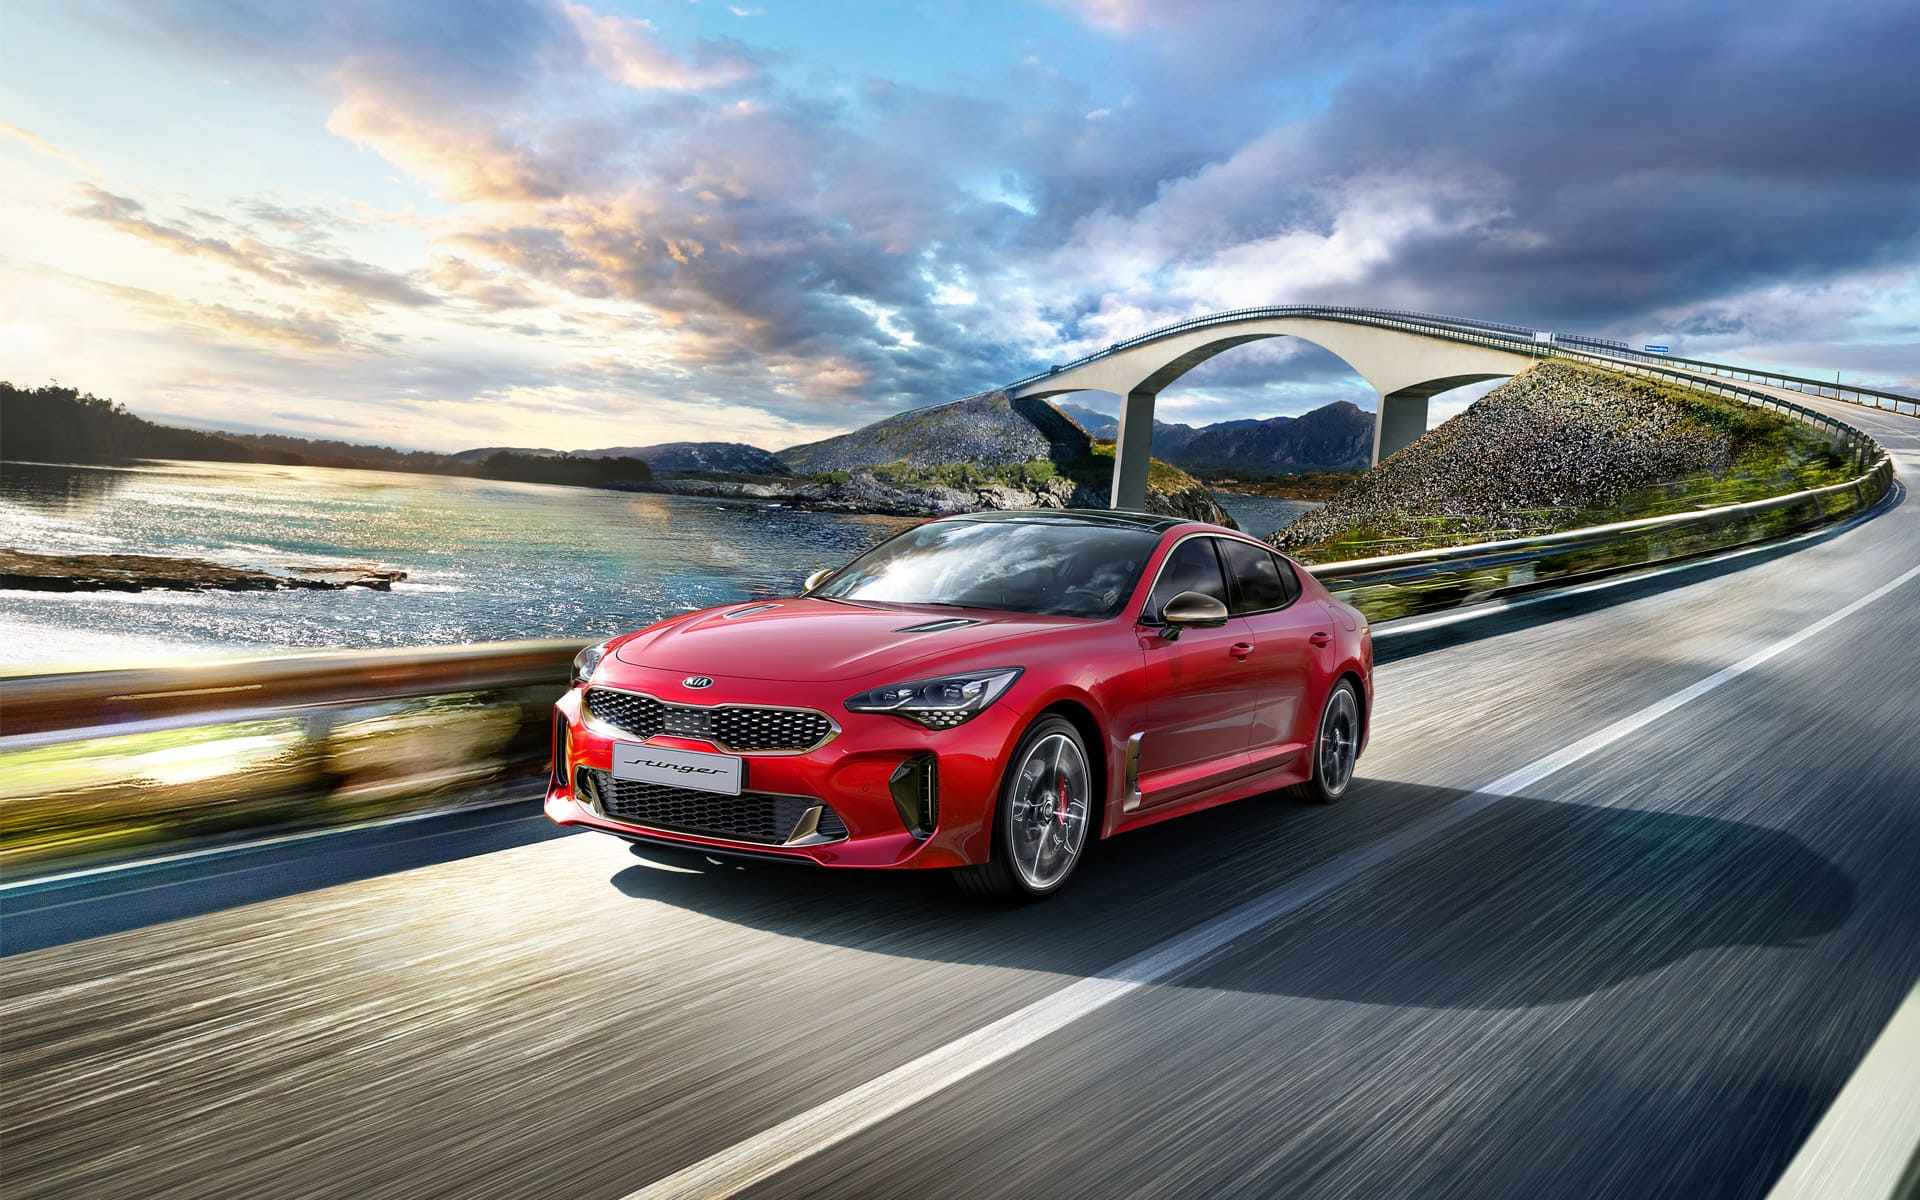 rumor front features kia mill modp car koup news type looking view modified at sports o r magazine